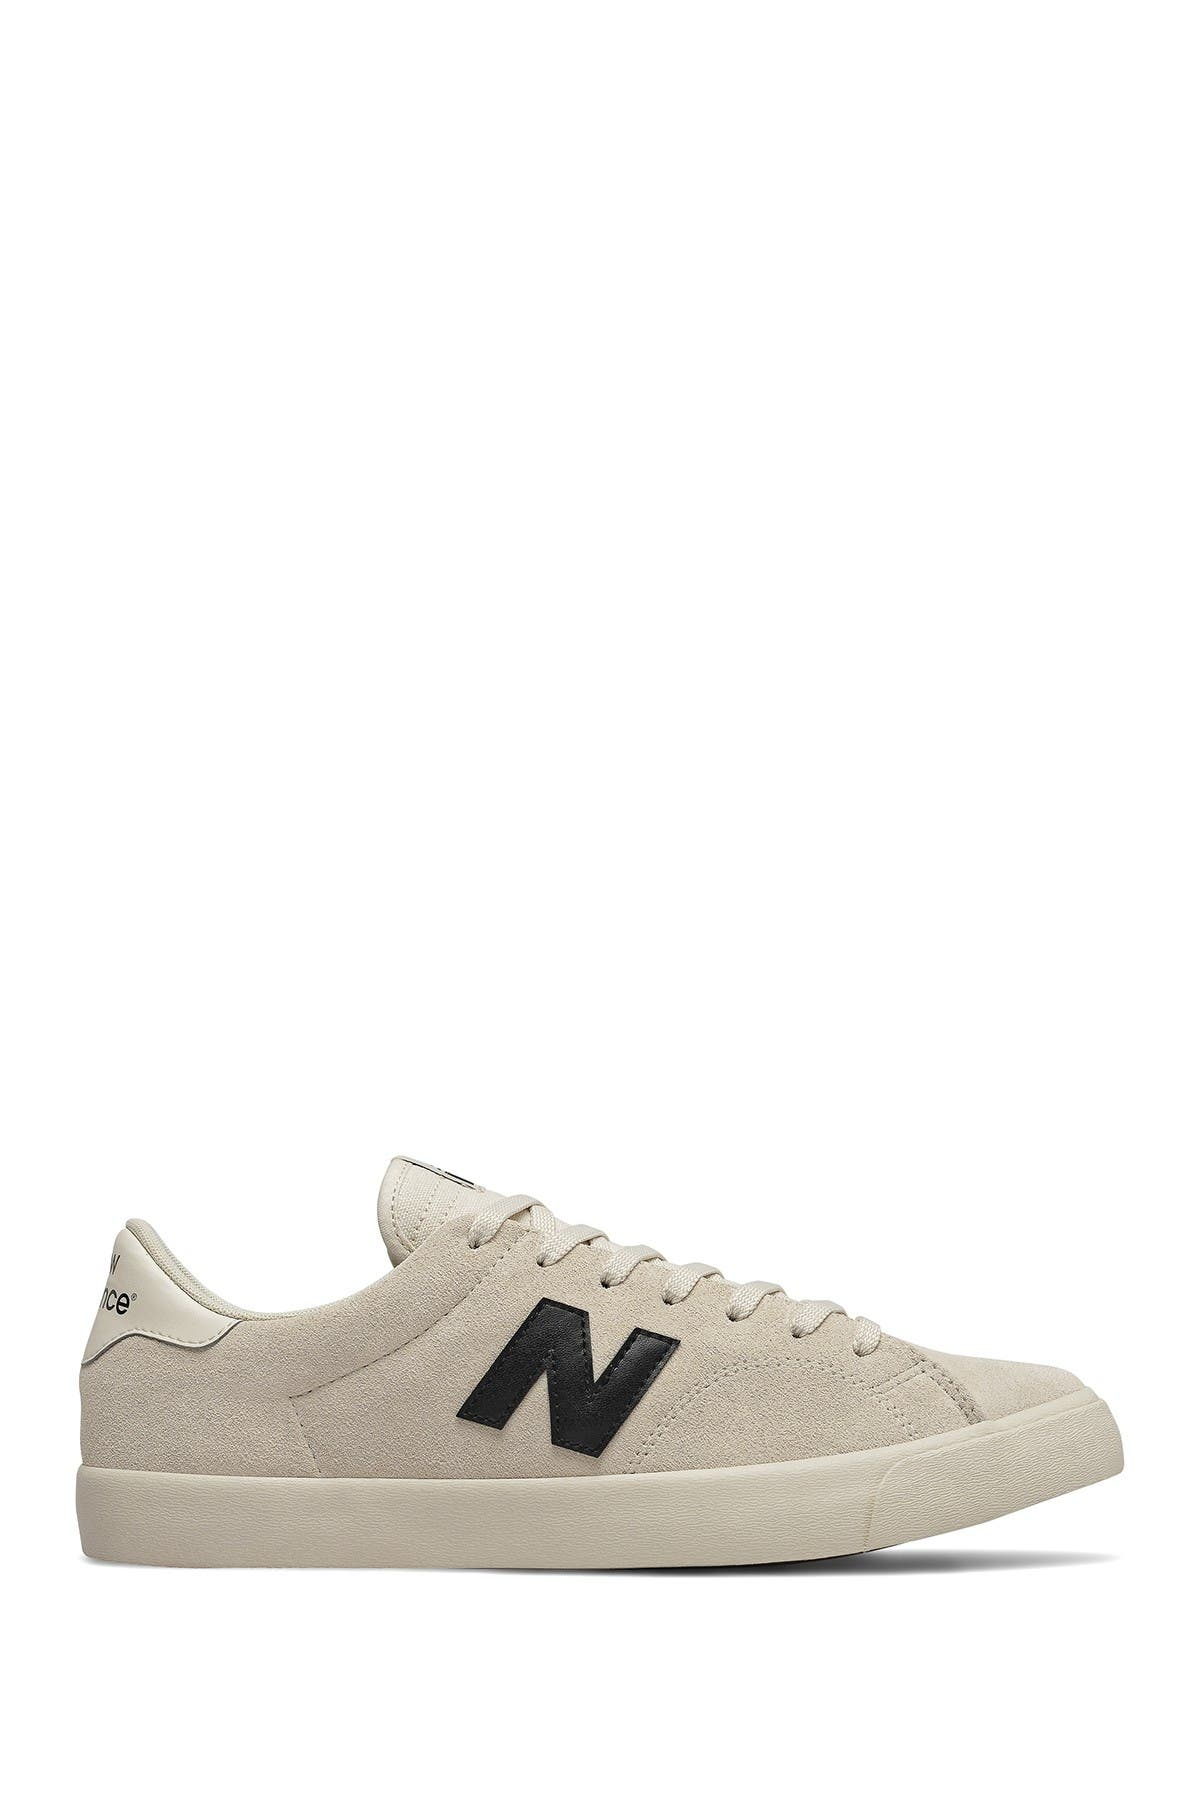 Image of New Balance 210 Suede Sneaker